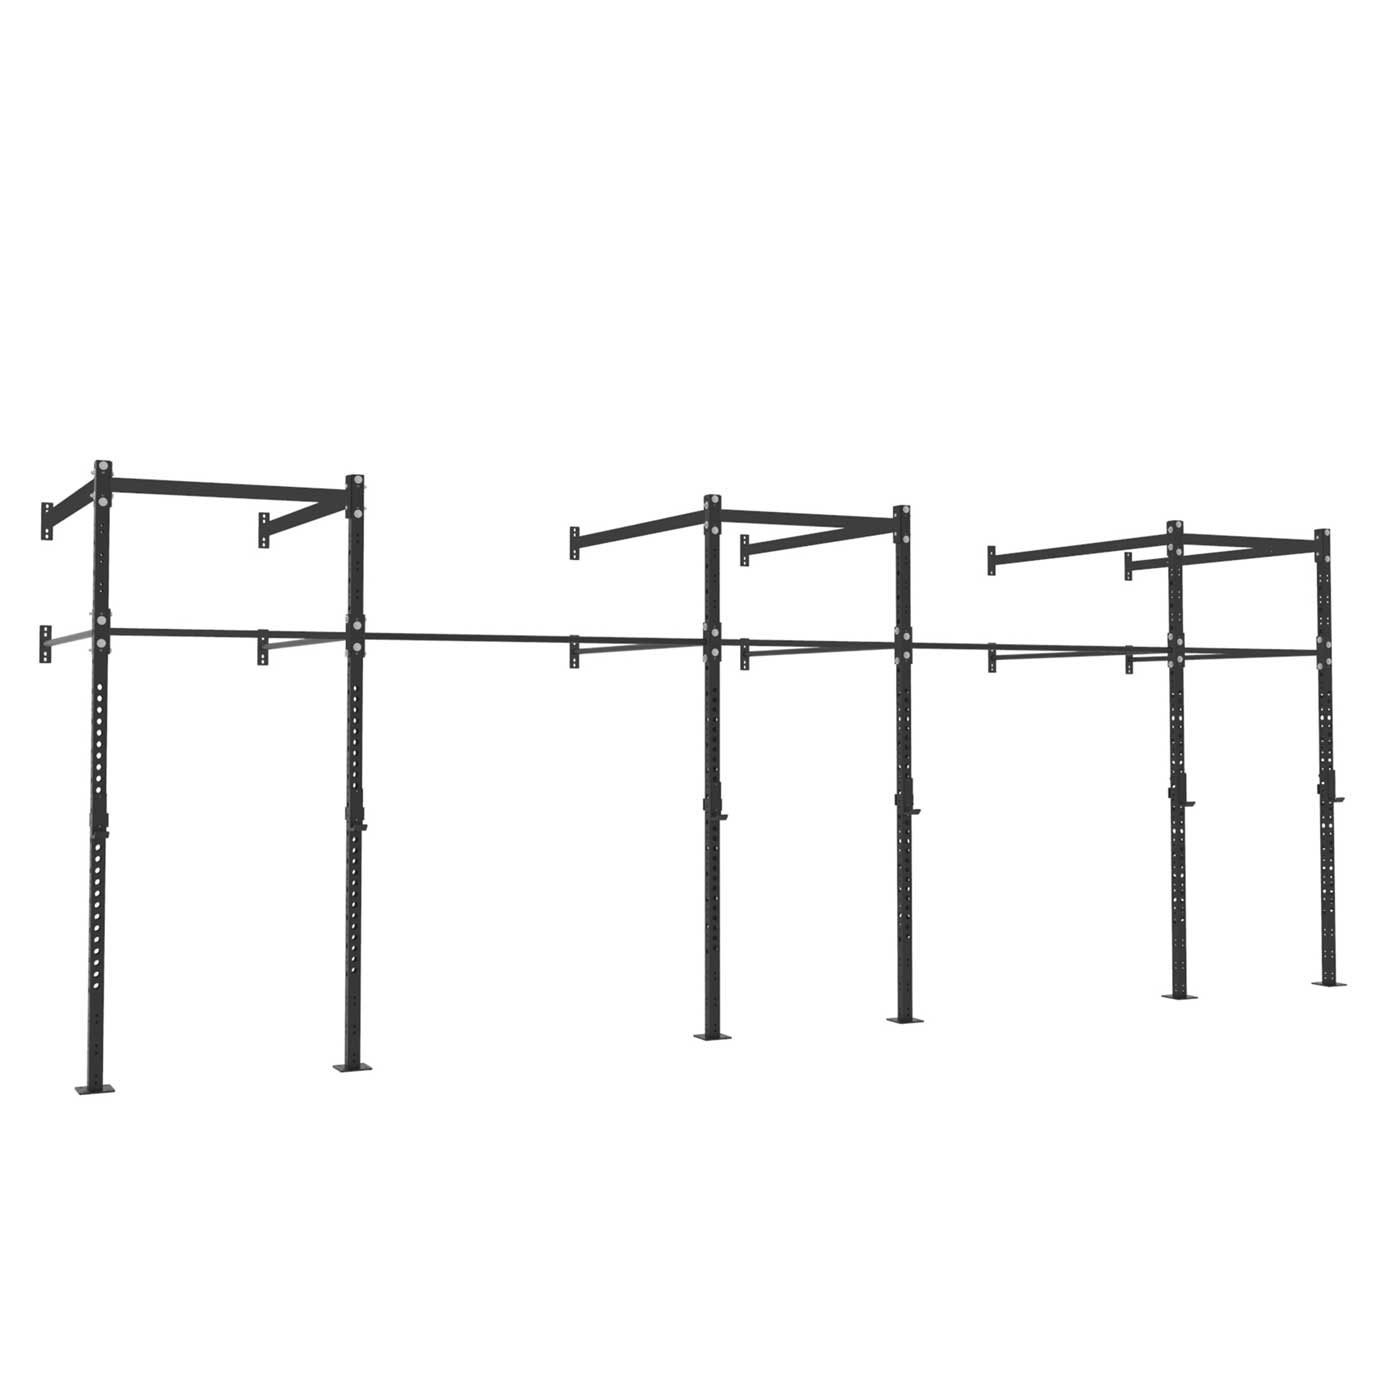 24ft Wall Mount Pull-Up Rig